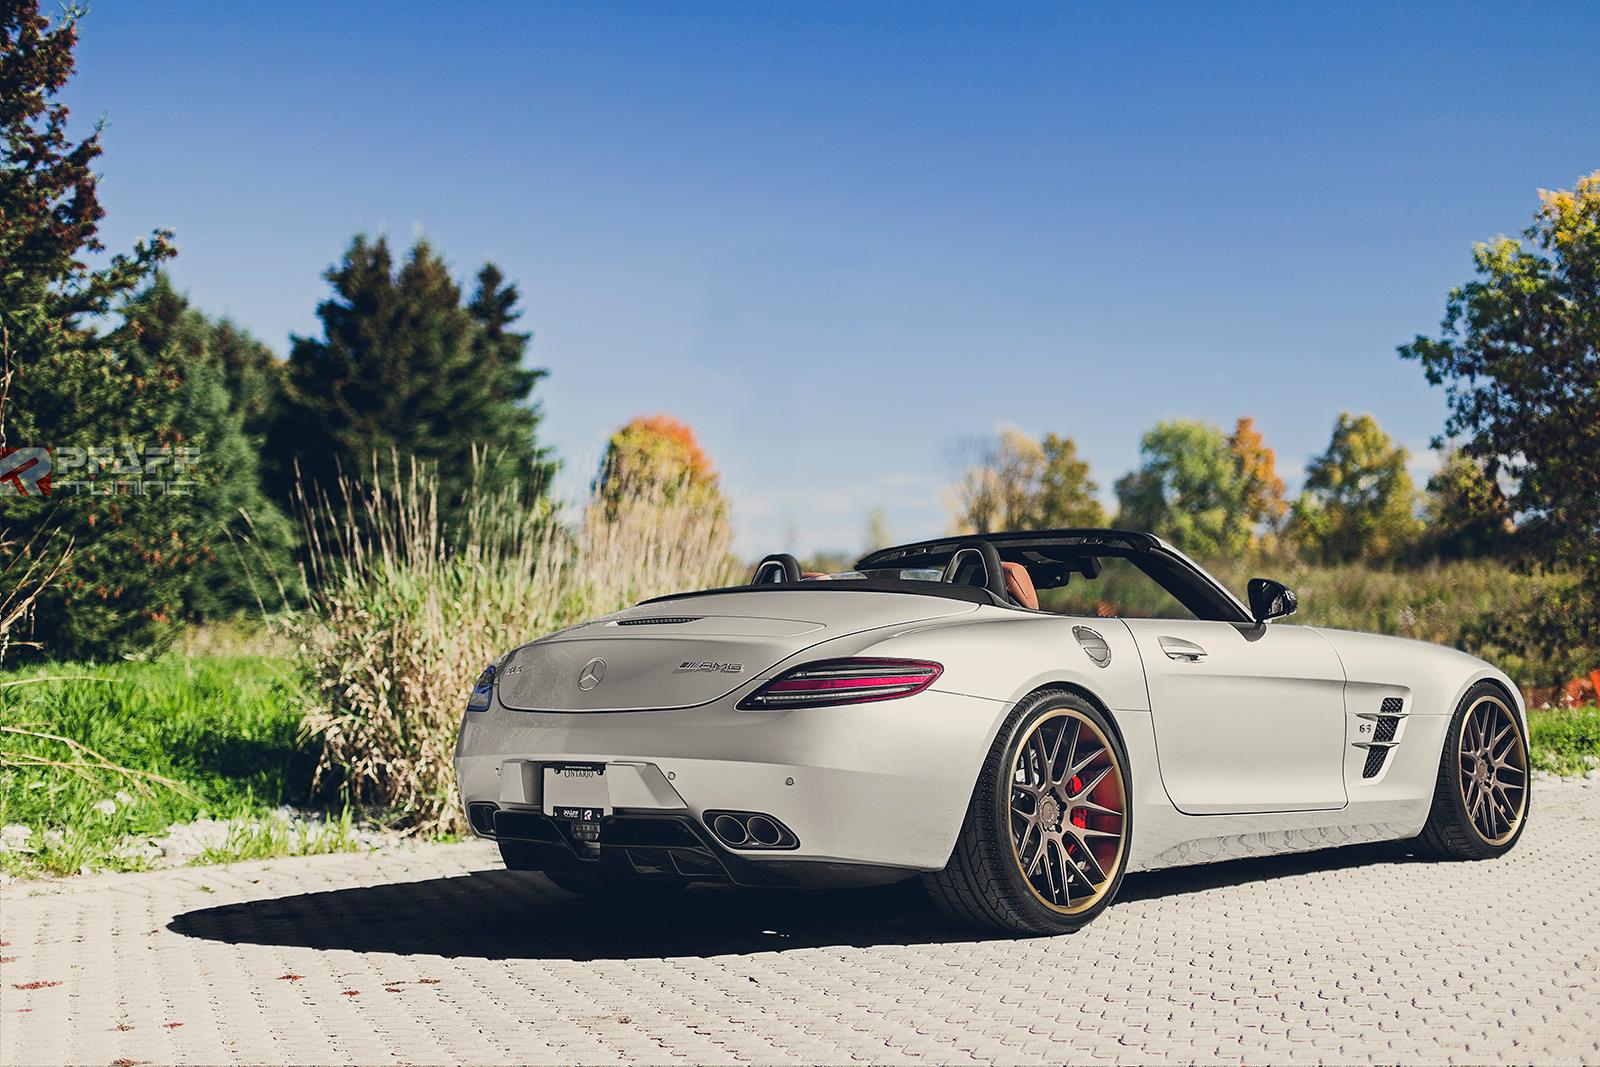 Mercedes Benz Sls Amg Roadster By Pfaff Tuning Gtspirit